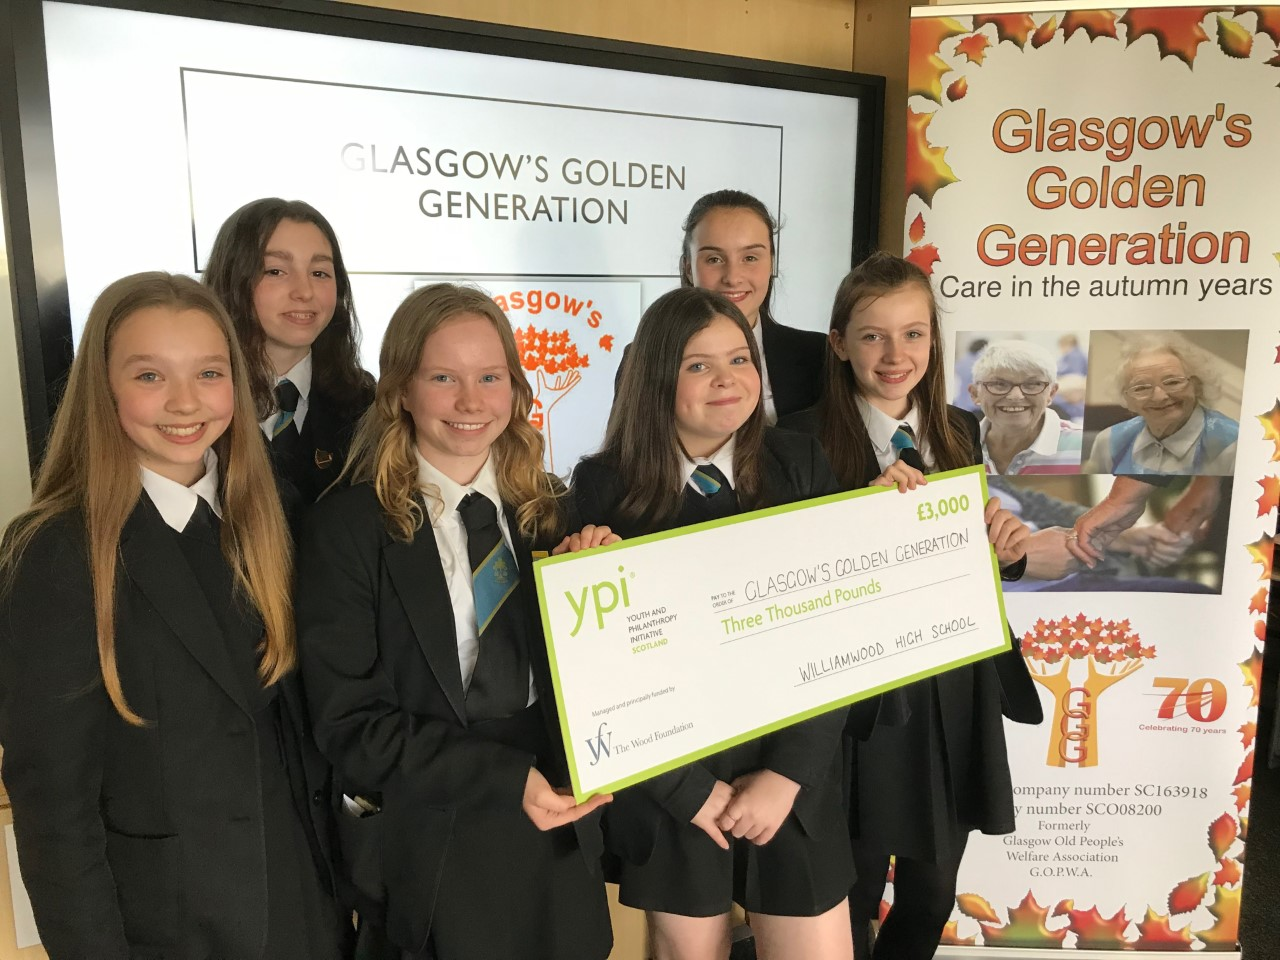 Williamwood School choose GGG for YPI